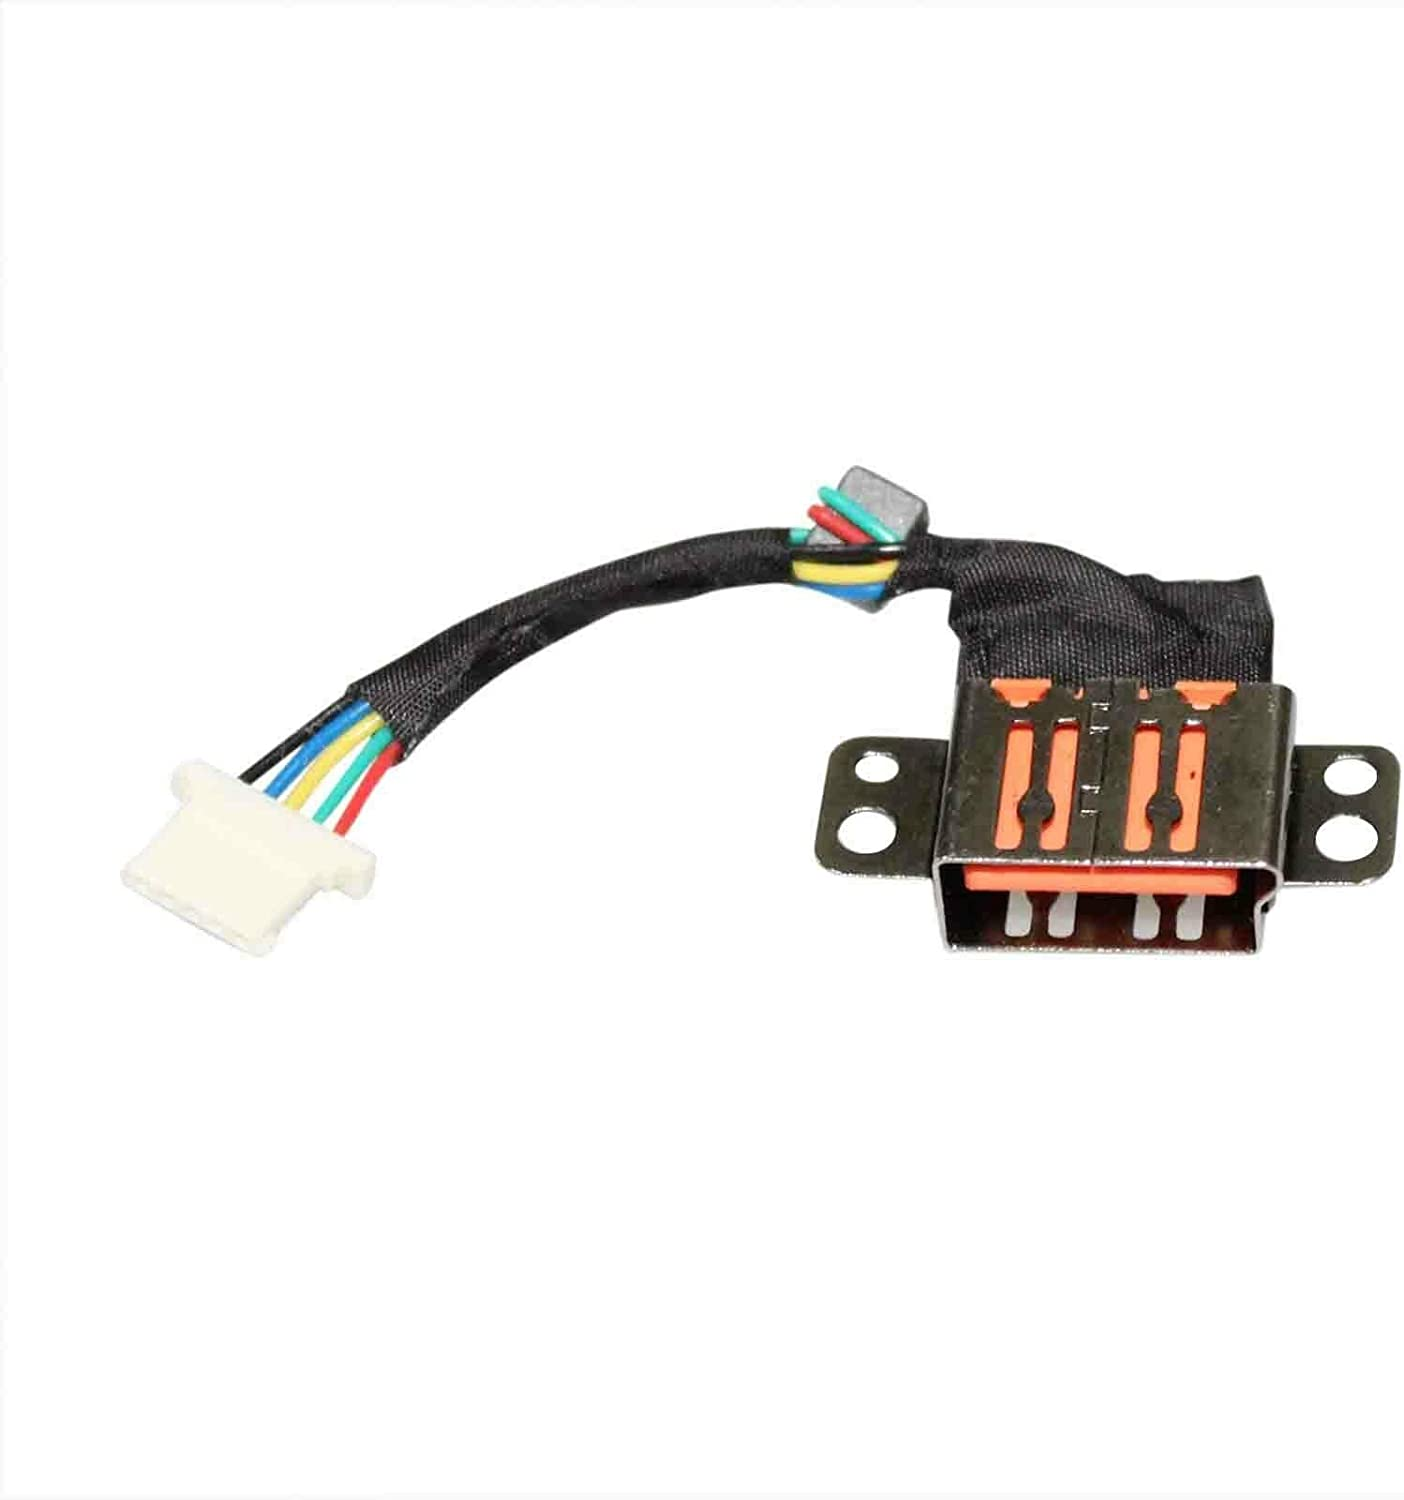 GinTai DC Power Jack Harness Cable Connector Socket Plug Port Replacement for Lenovo Yoga 700-11ISK 80QE